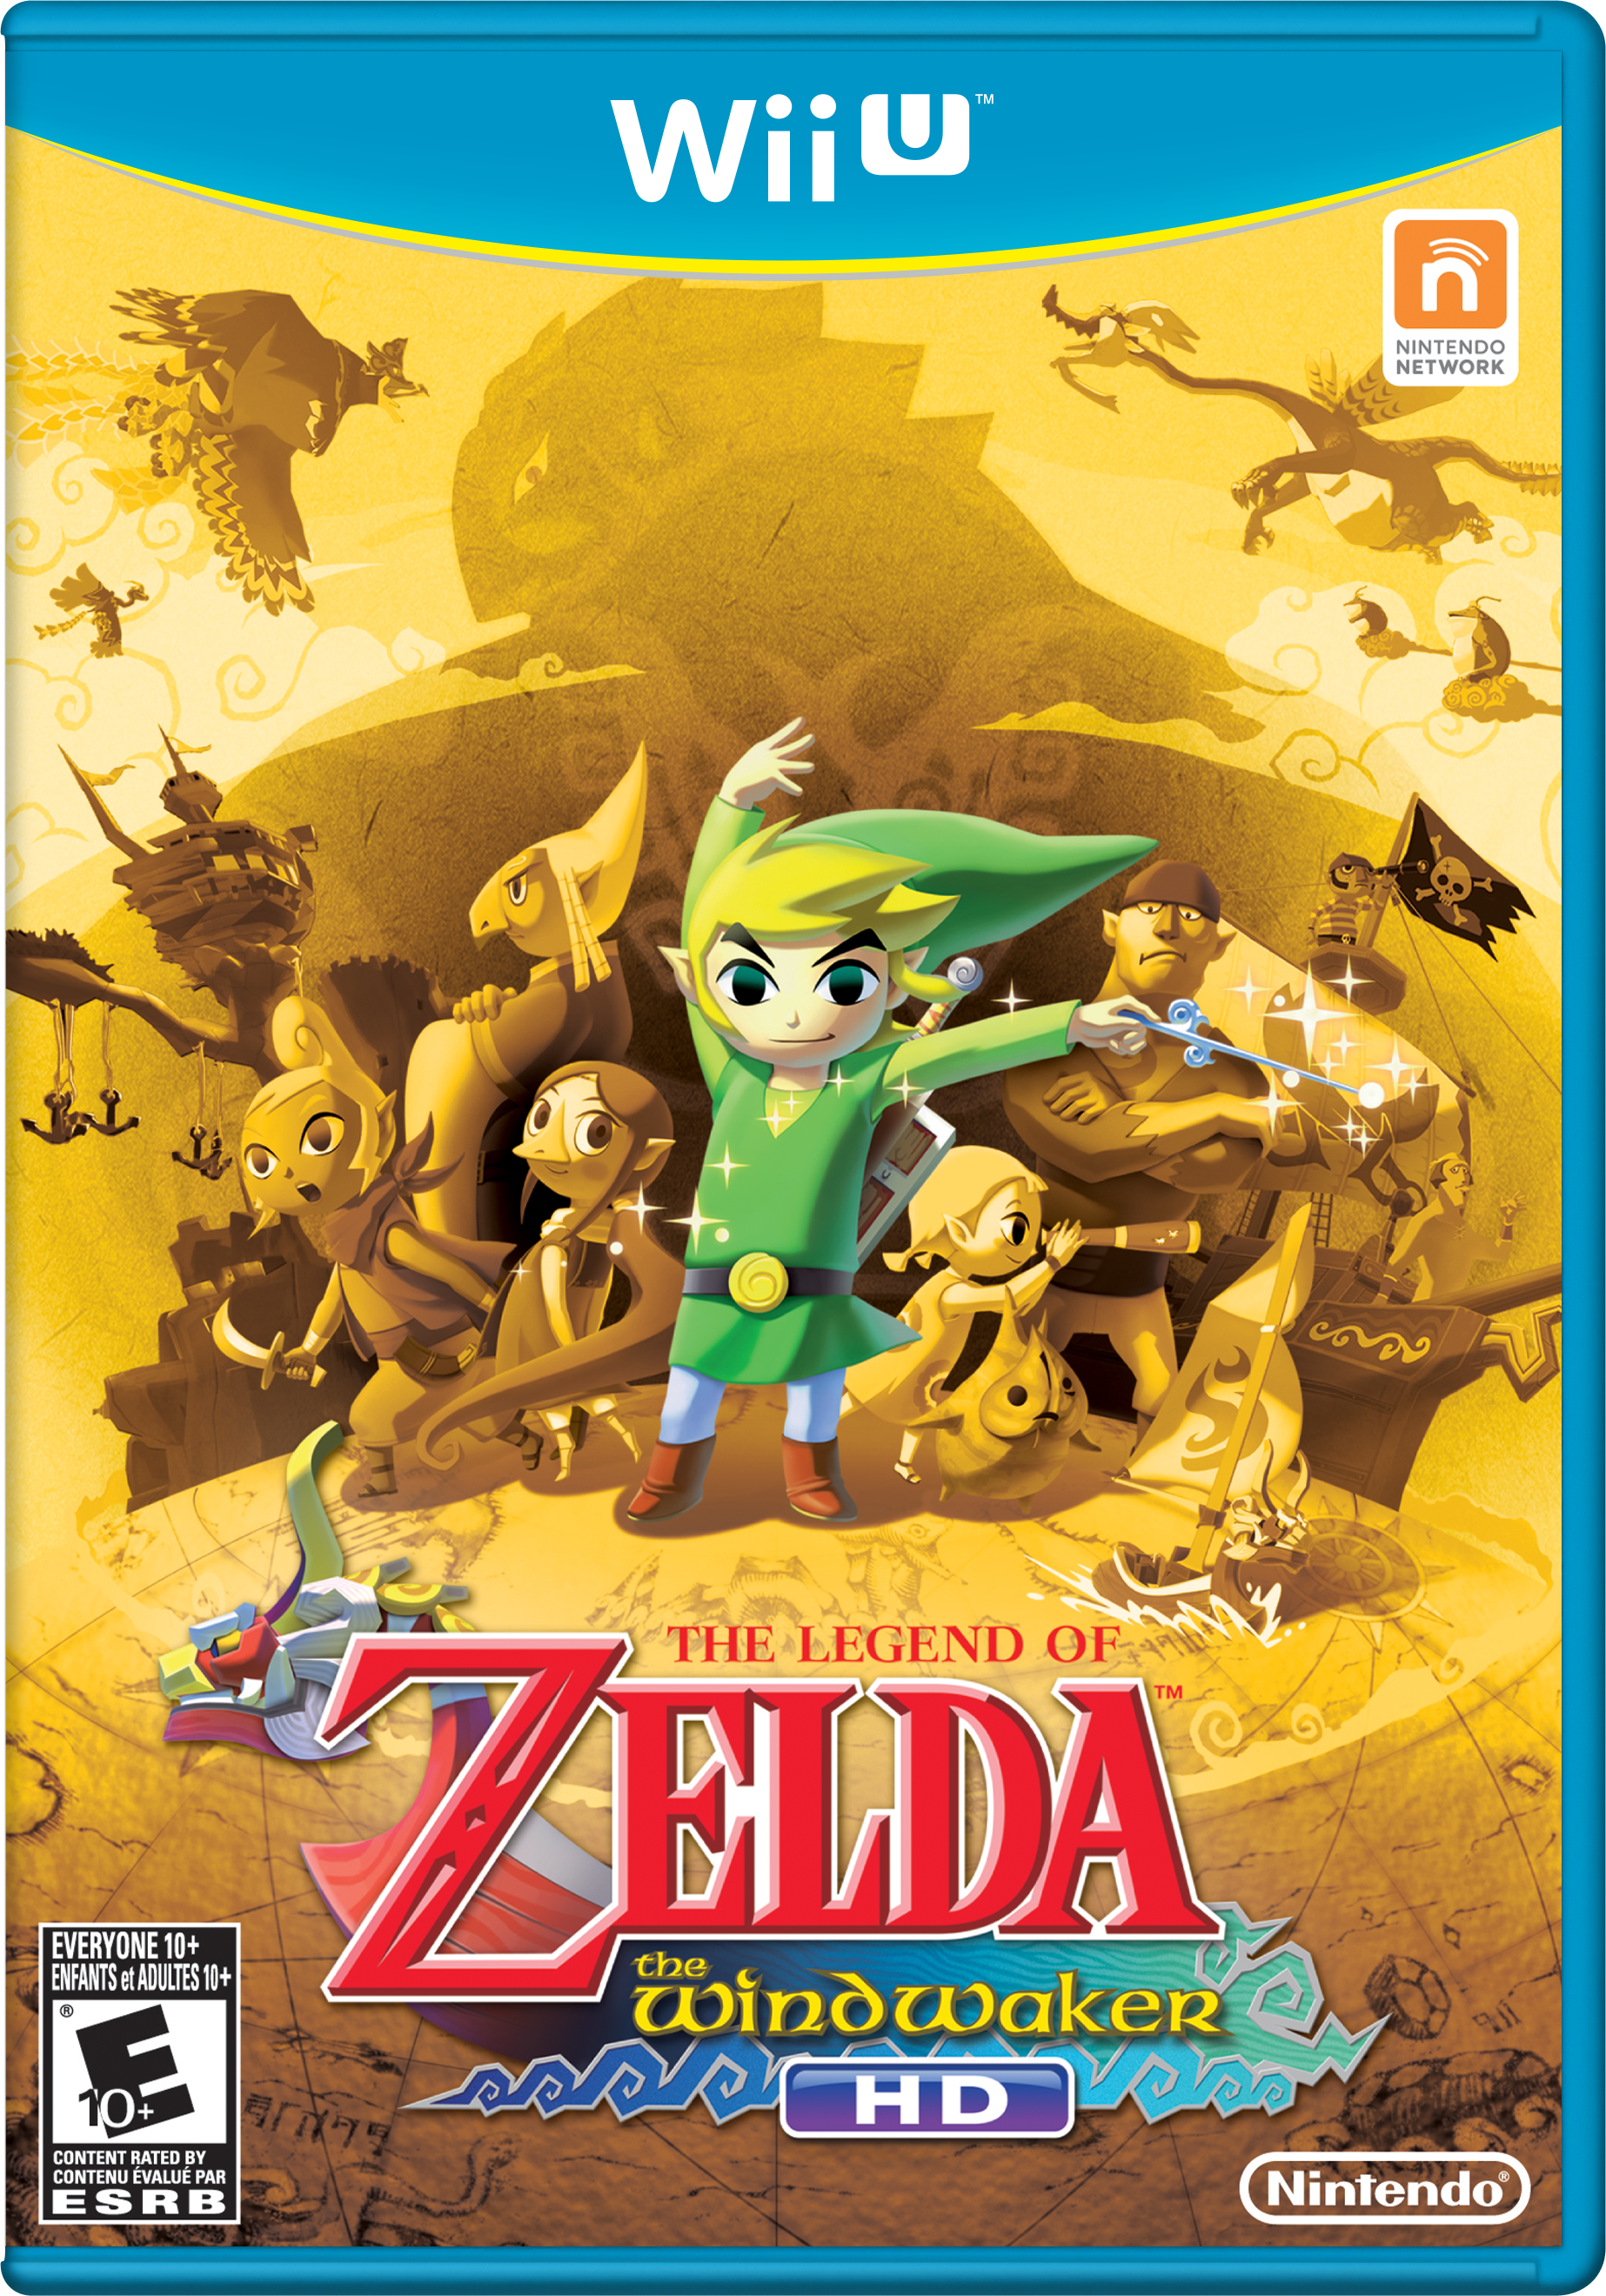 TWWHD_Boxart.png